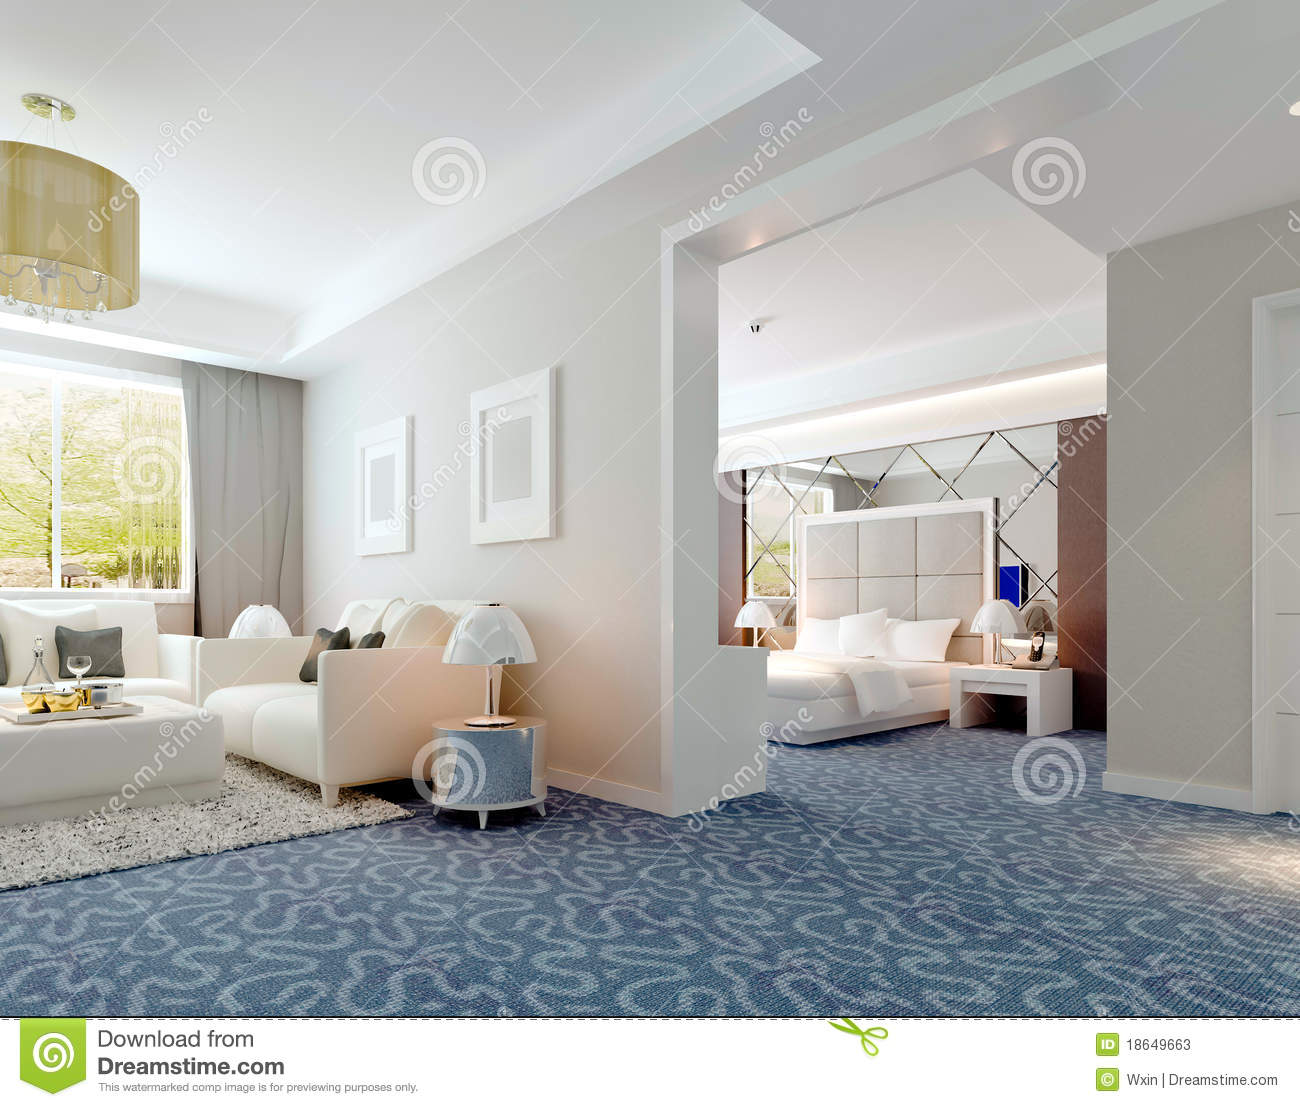 3d deluxe hotel suite interior rendering stock illustration image 18649663. Black Bedroom Furniture Sets. Home Design Ideas